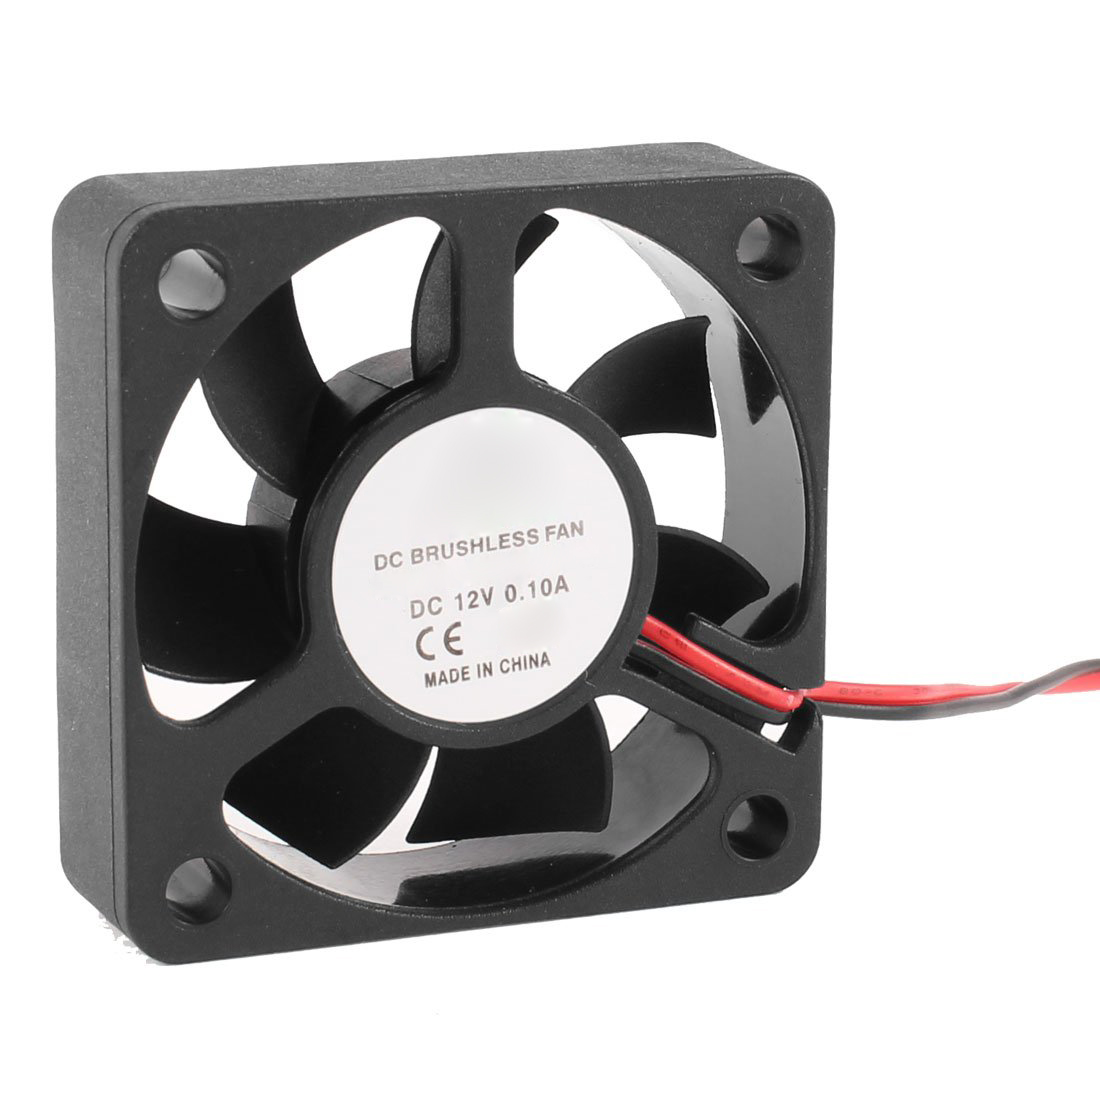 PROMOTION! 50mm 12V 2Pin 4000RPM Sleeve Bearing PC Case CPU Cooler Cooling Fan 75mmx30mm dc 12v 0 24a 2 pin computer pc sleeve bearing blower cooling fan 7530 r179t drop shipping